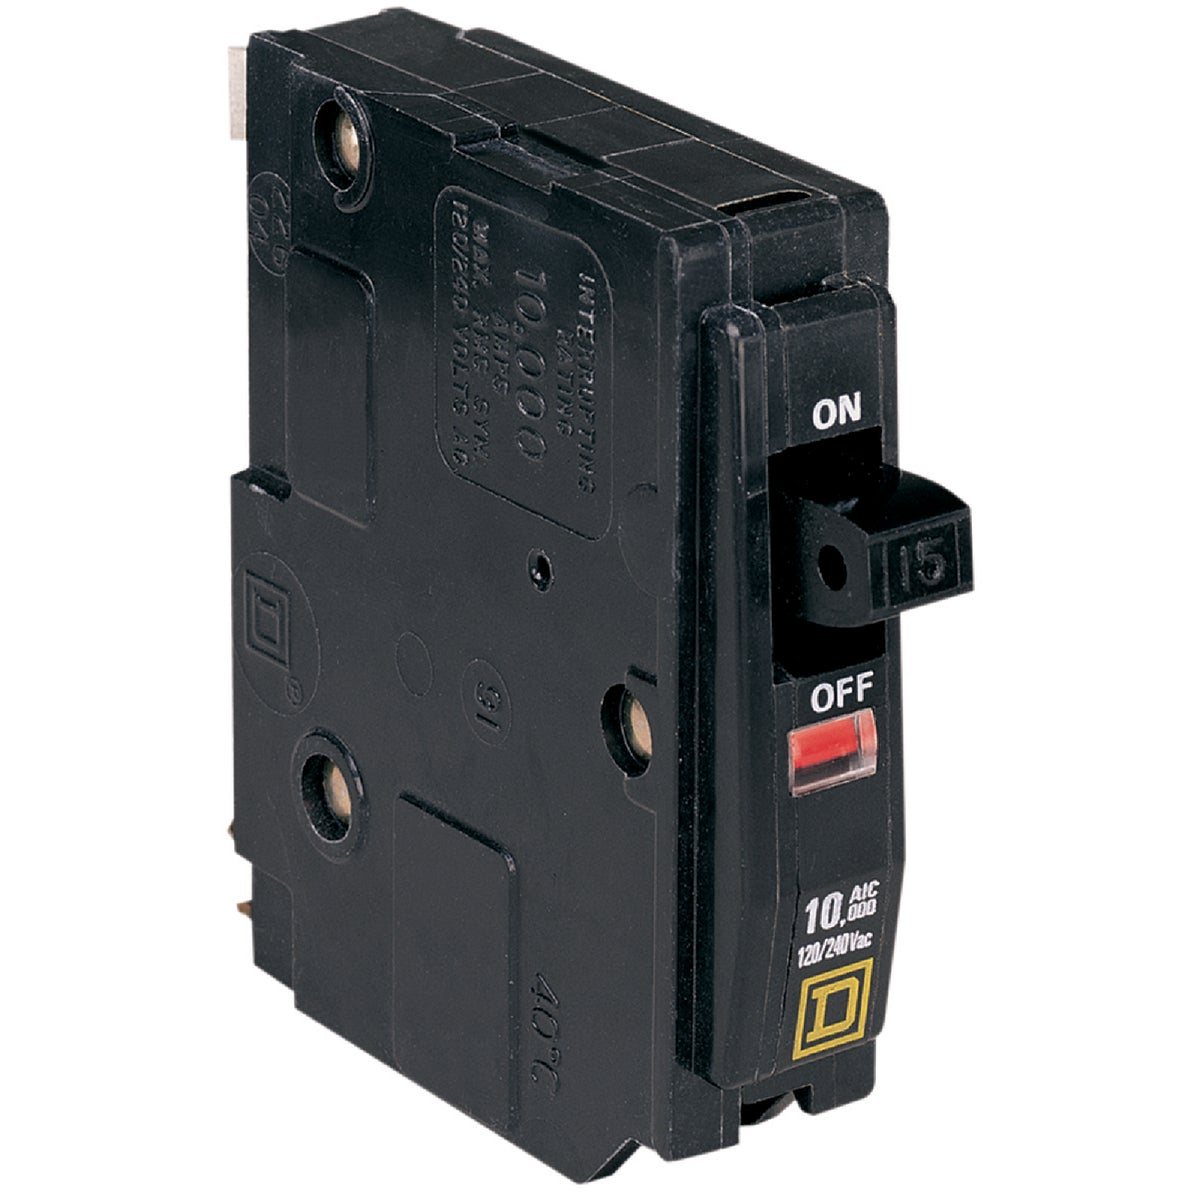 20A SP CIRCUIT BREAKER - QO120C by Square D Co